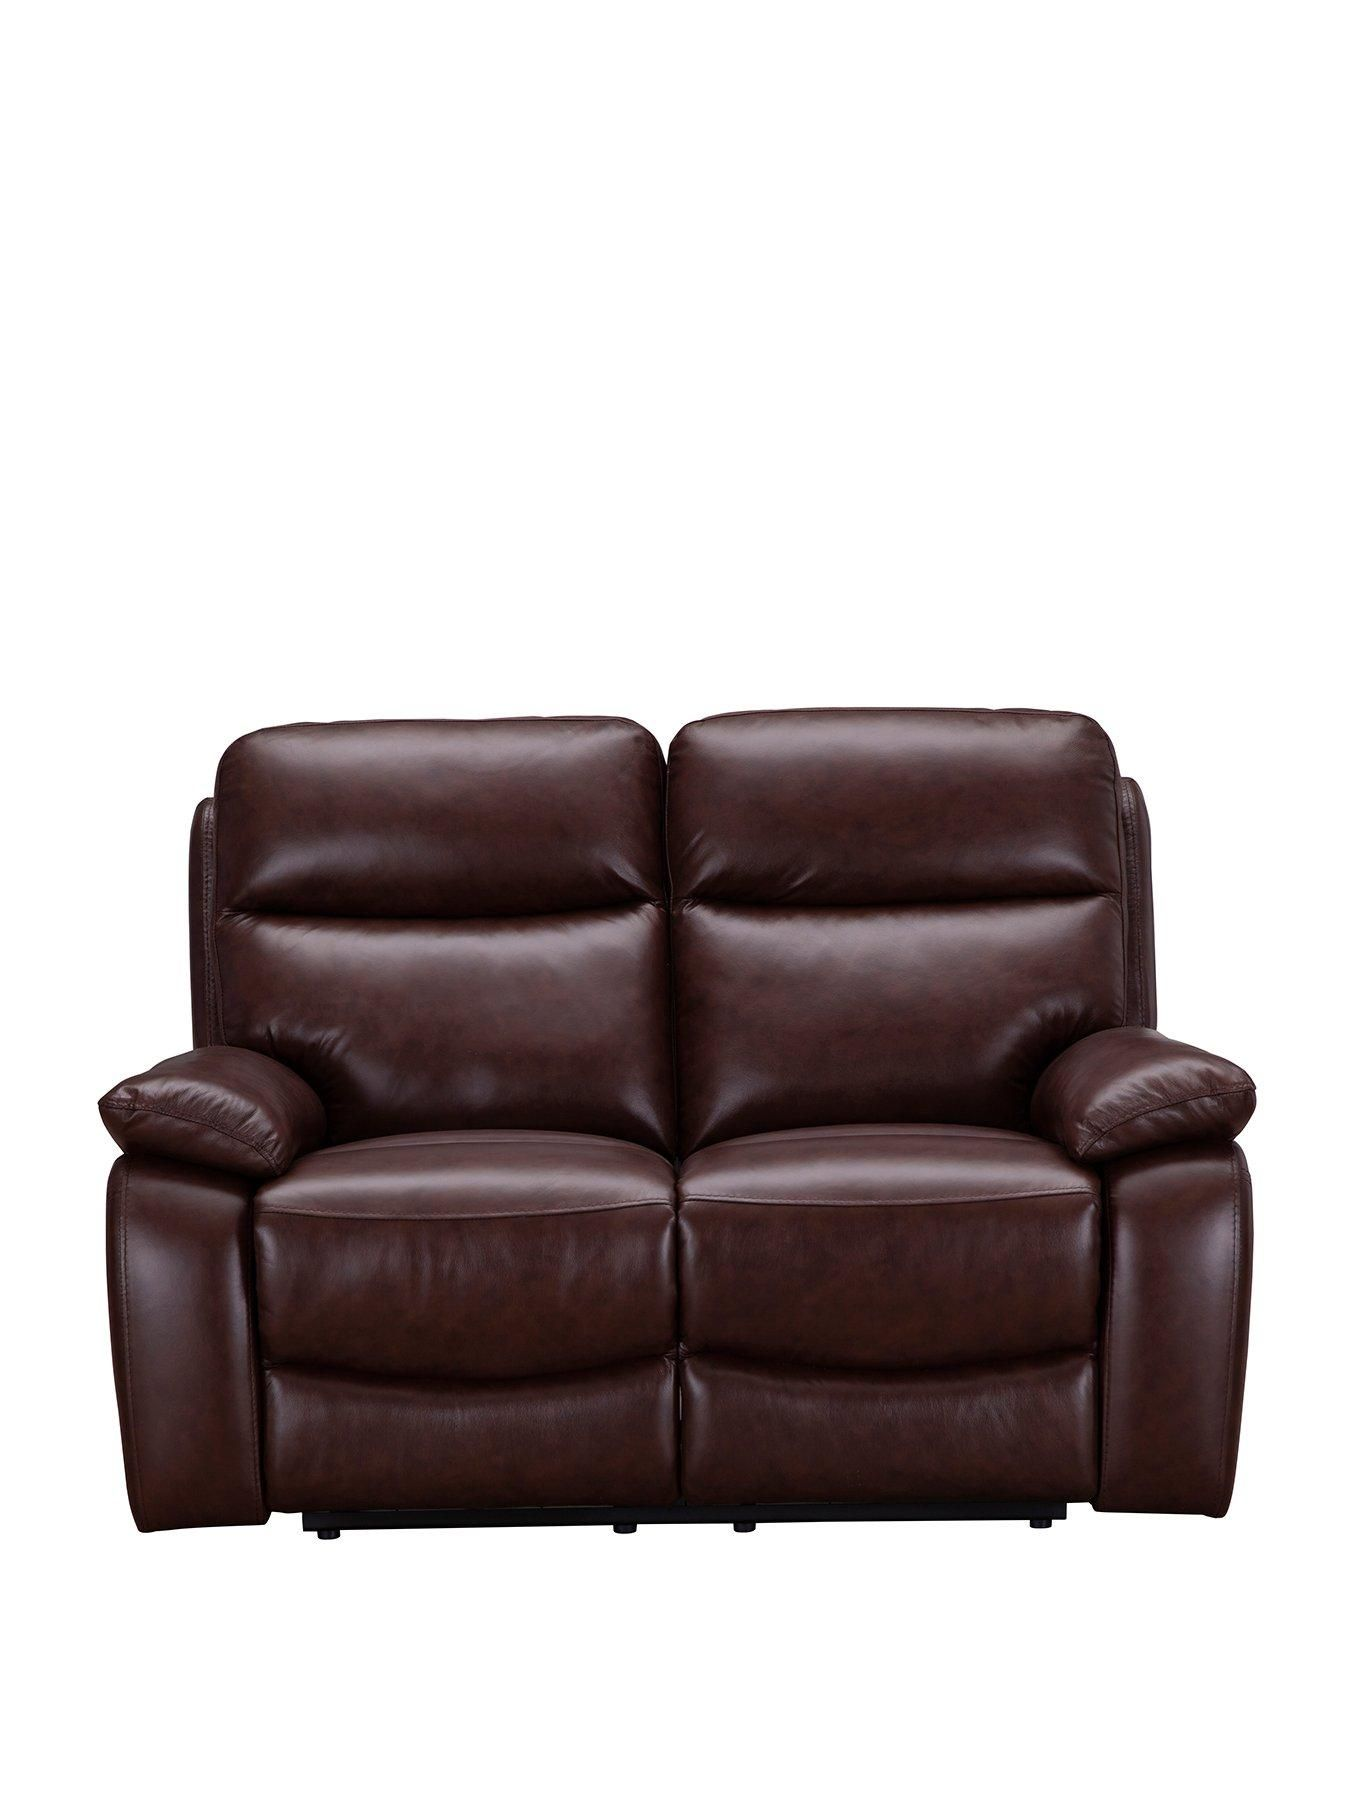 Hasting Real Leather Faux Leather 2 Seater Manual Recliner Sofa Reclining Sofa Recliner Sofa